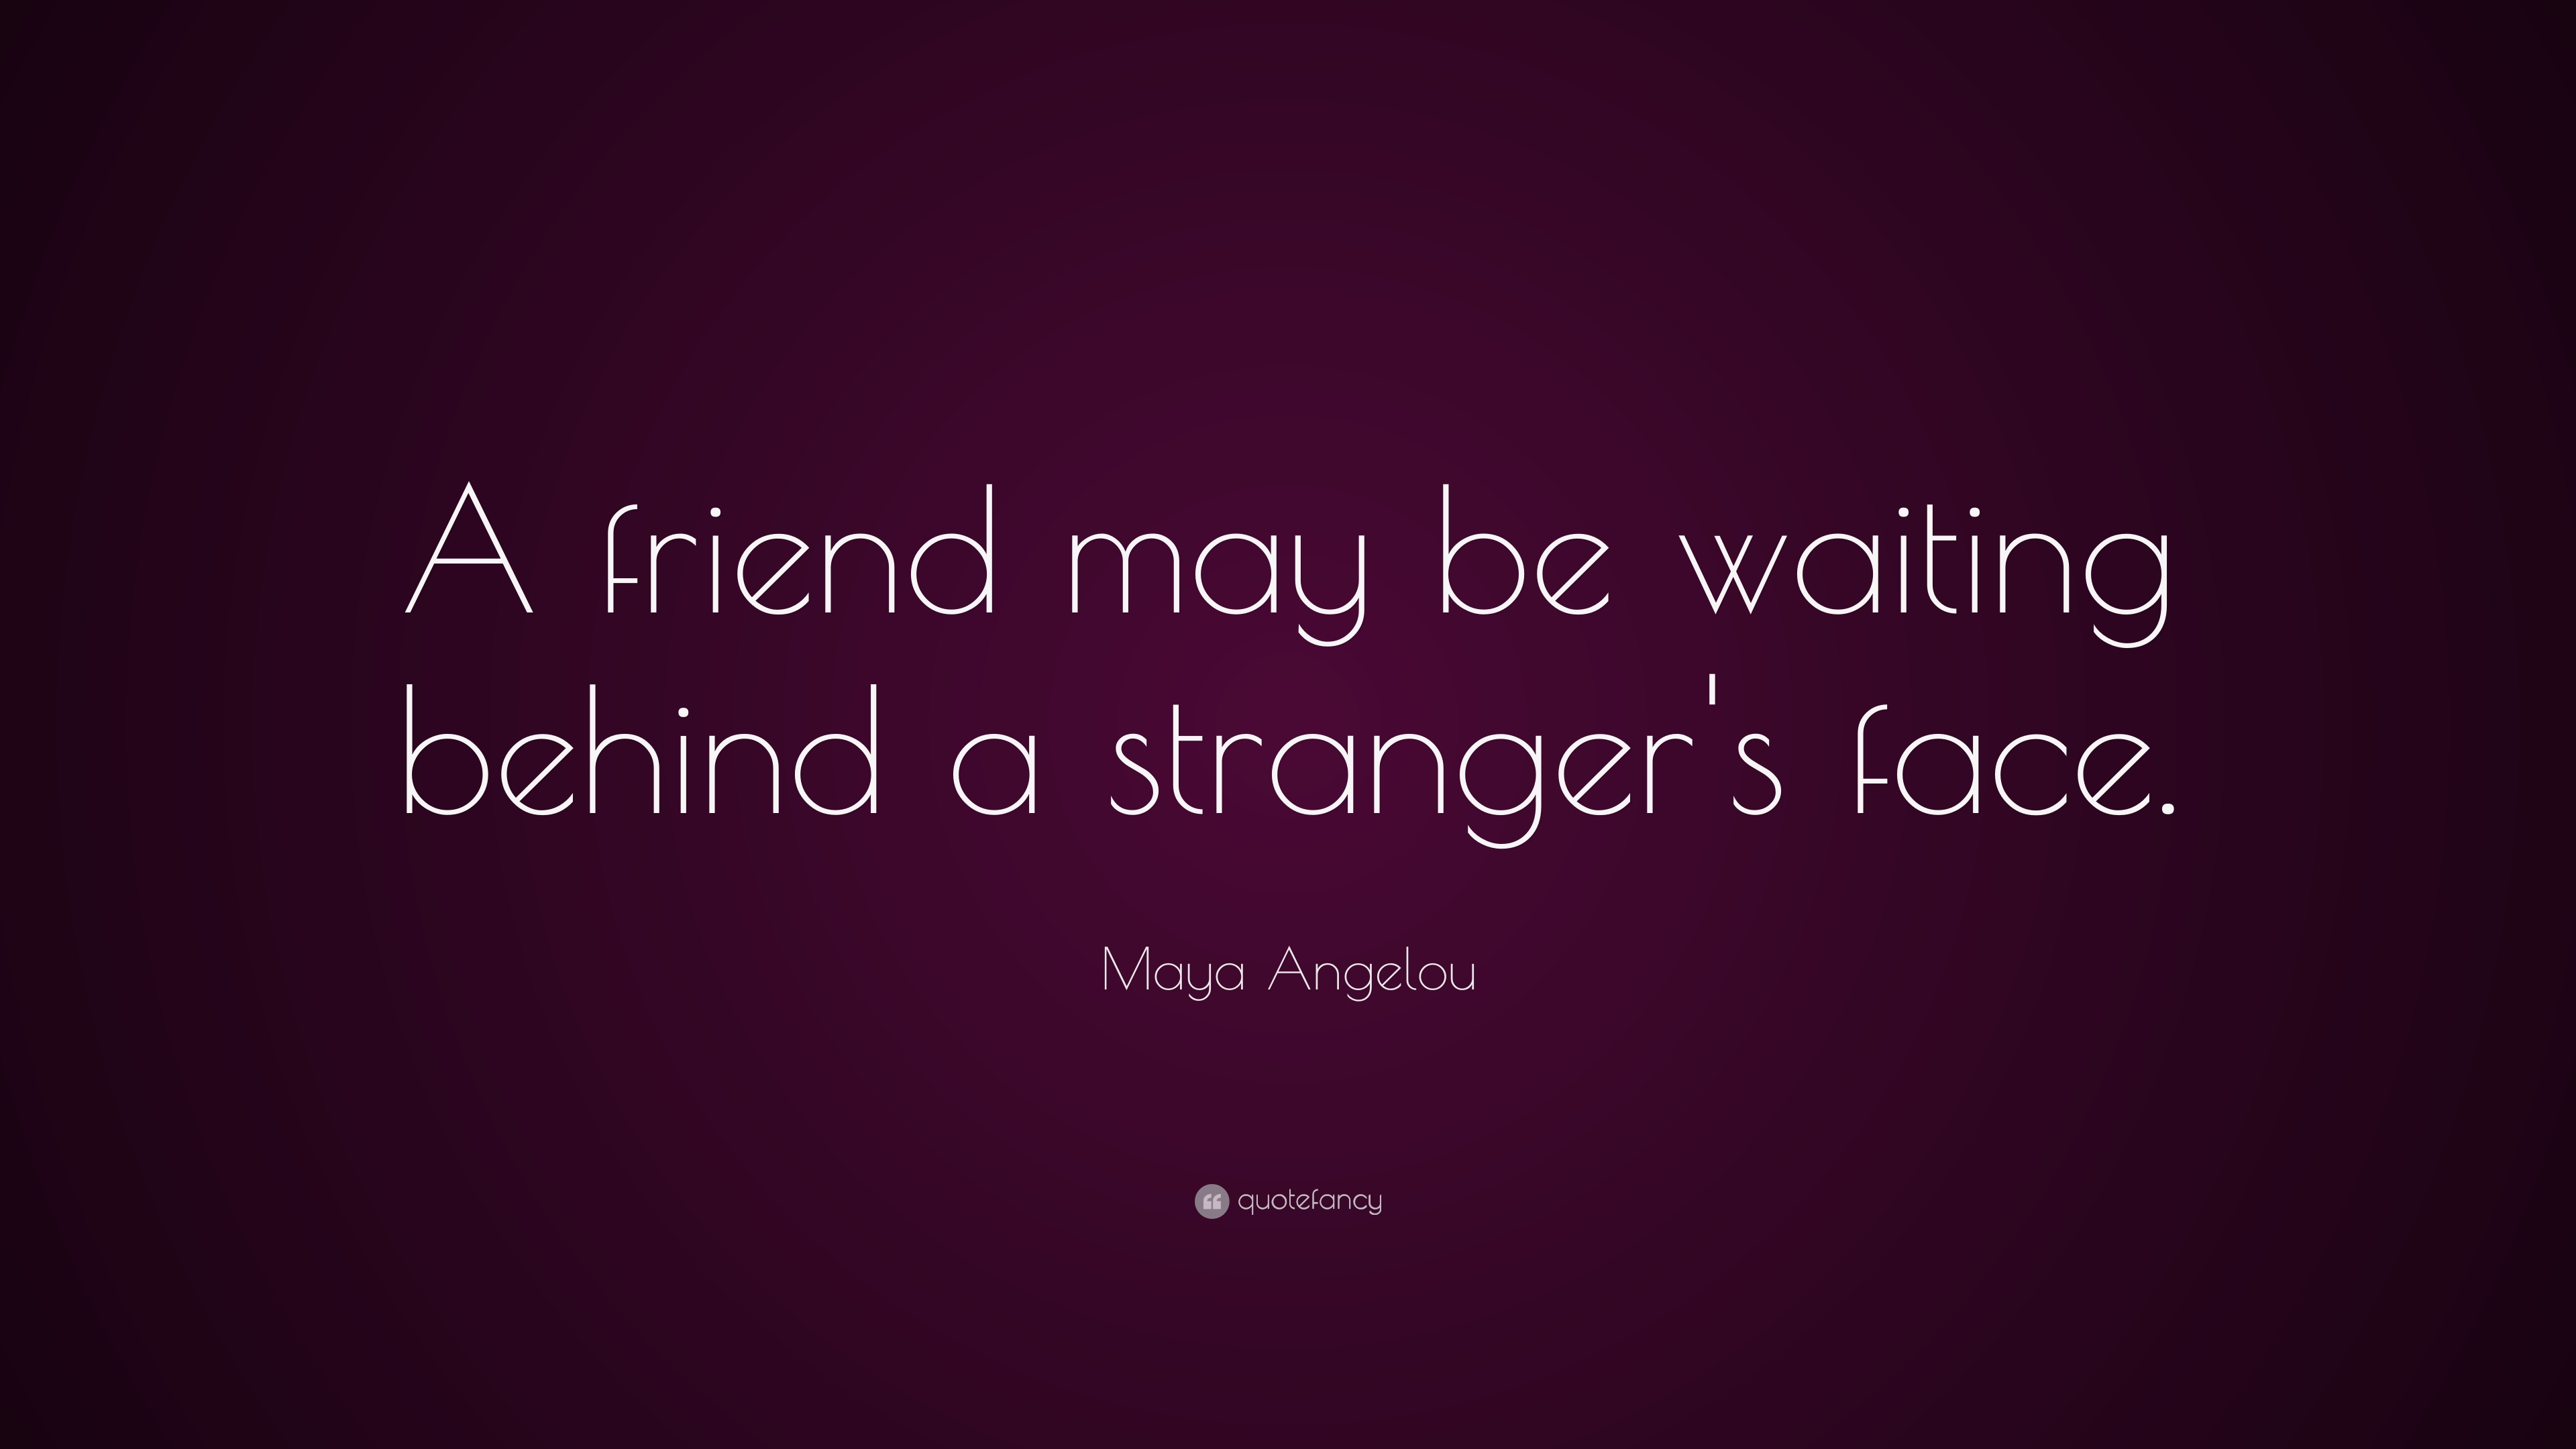 Quotes About Friends Friendship Quotes 21 Wallpapers  Quotefancy